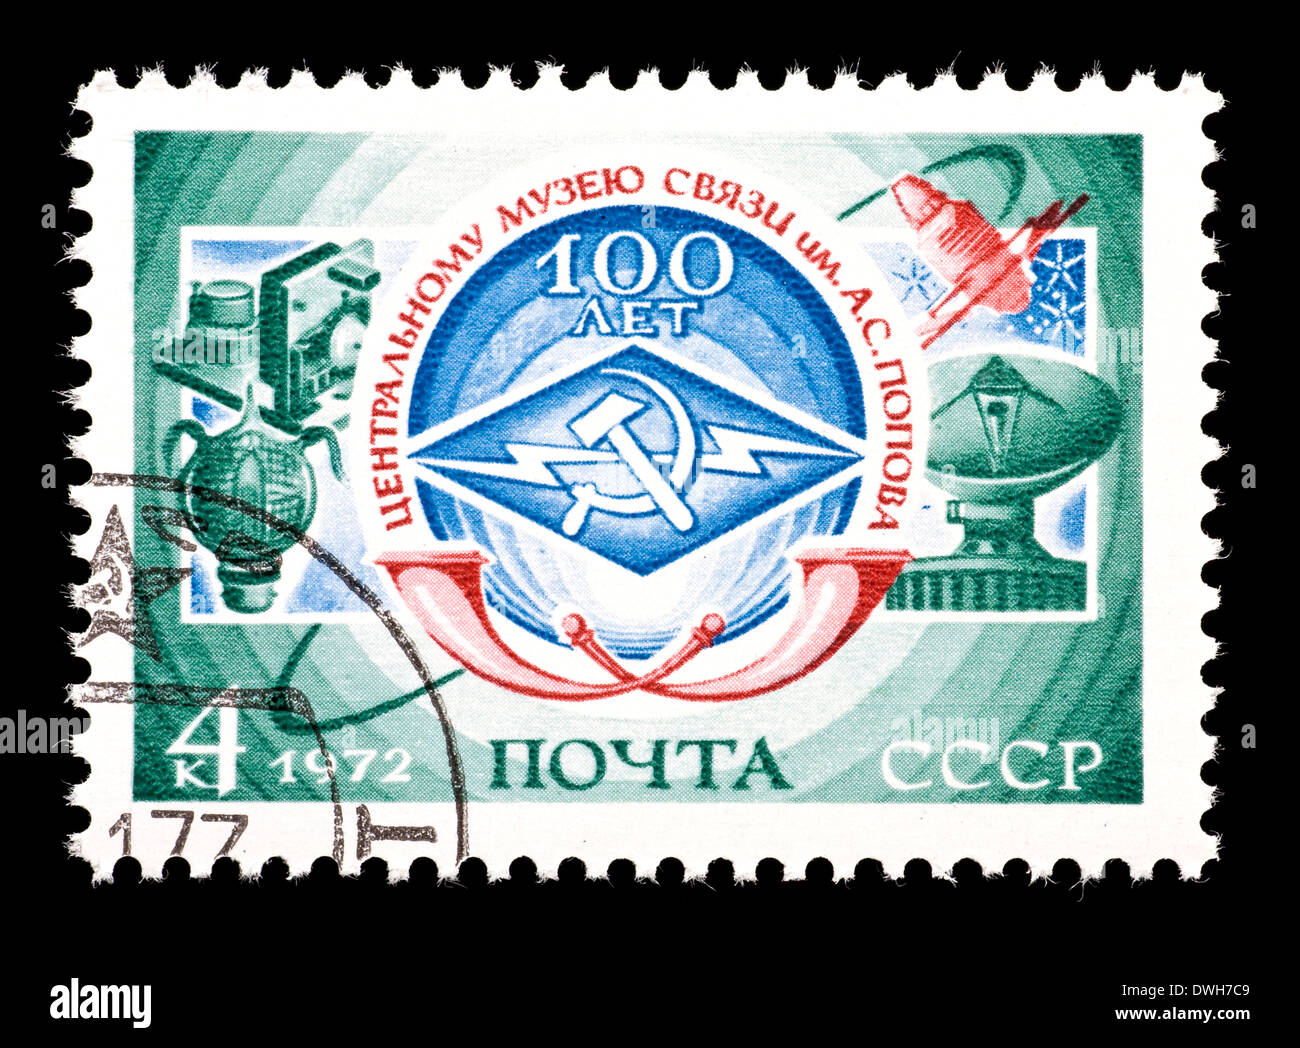 Postage Stamp From The Soviet Union Ussr Depicting The Museum